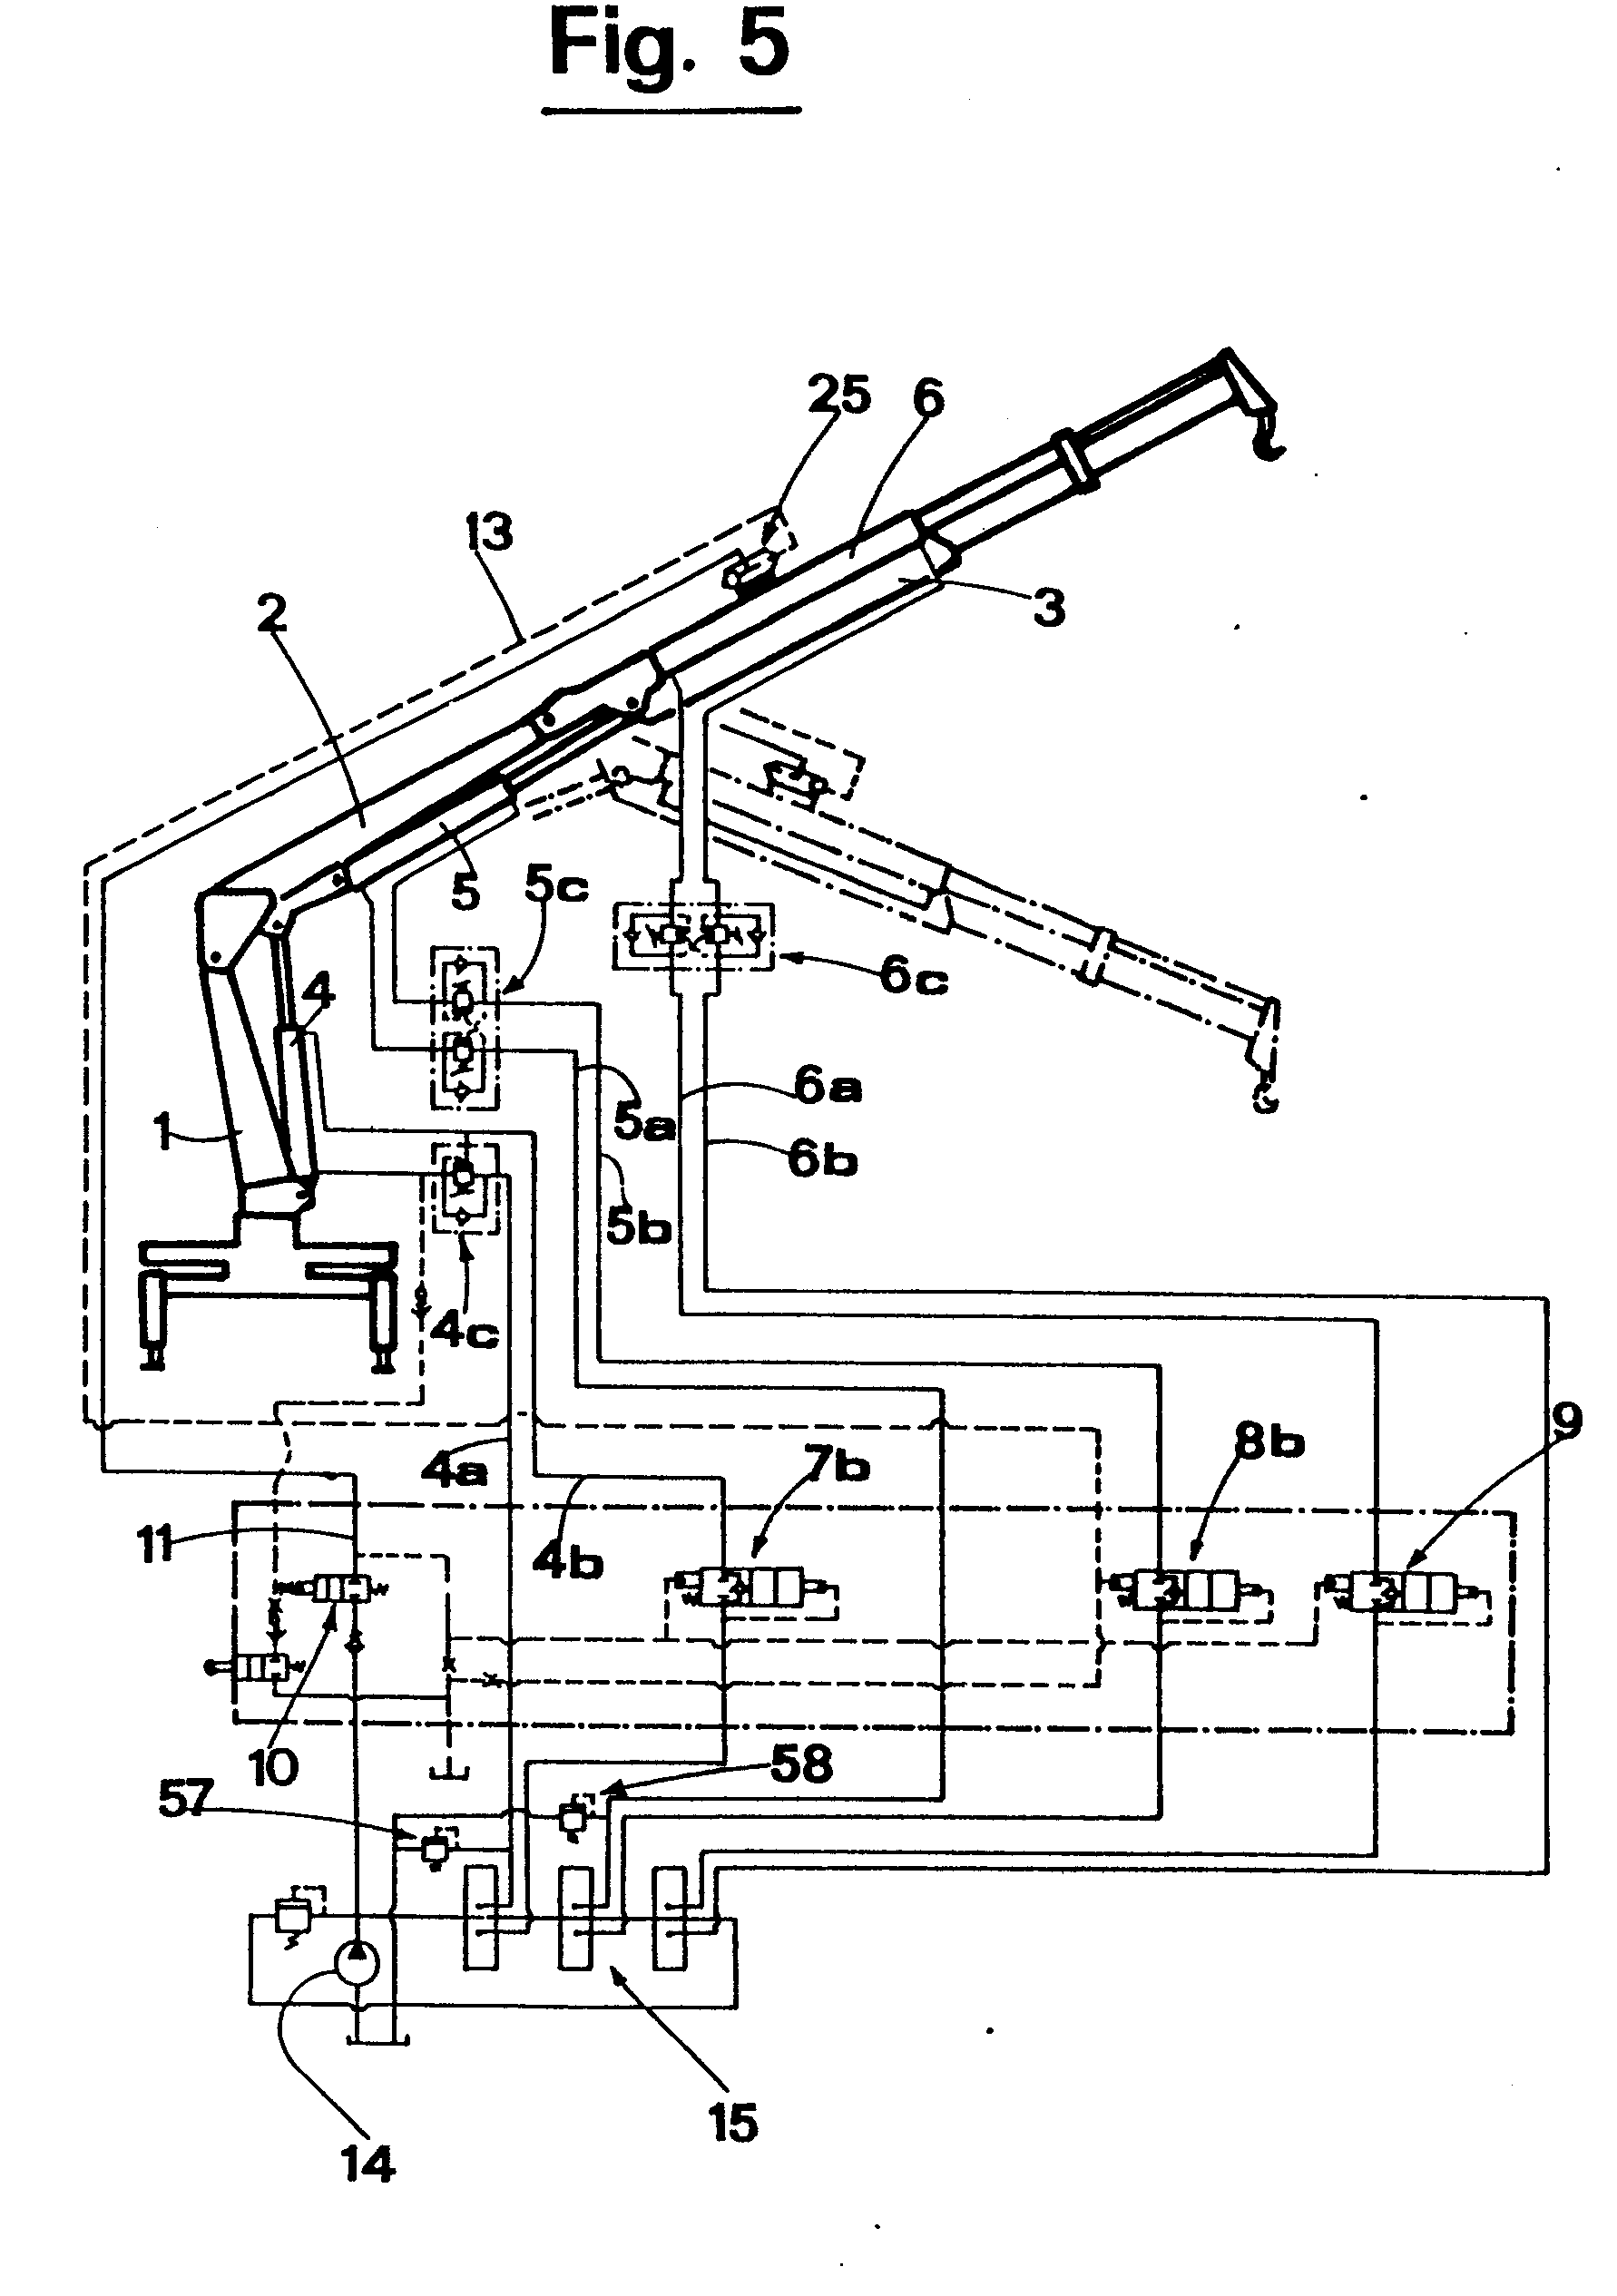 Dump Truck Hydraulic System Schematics For